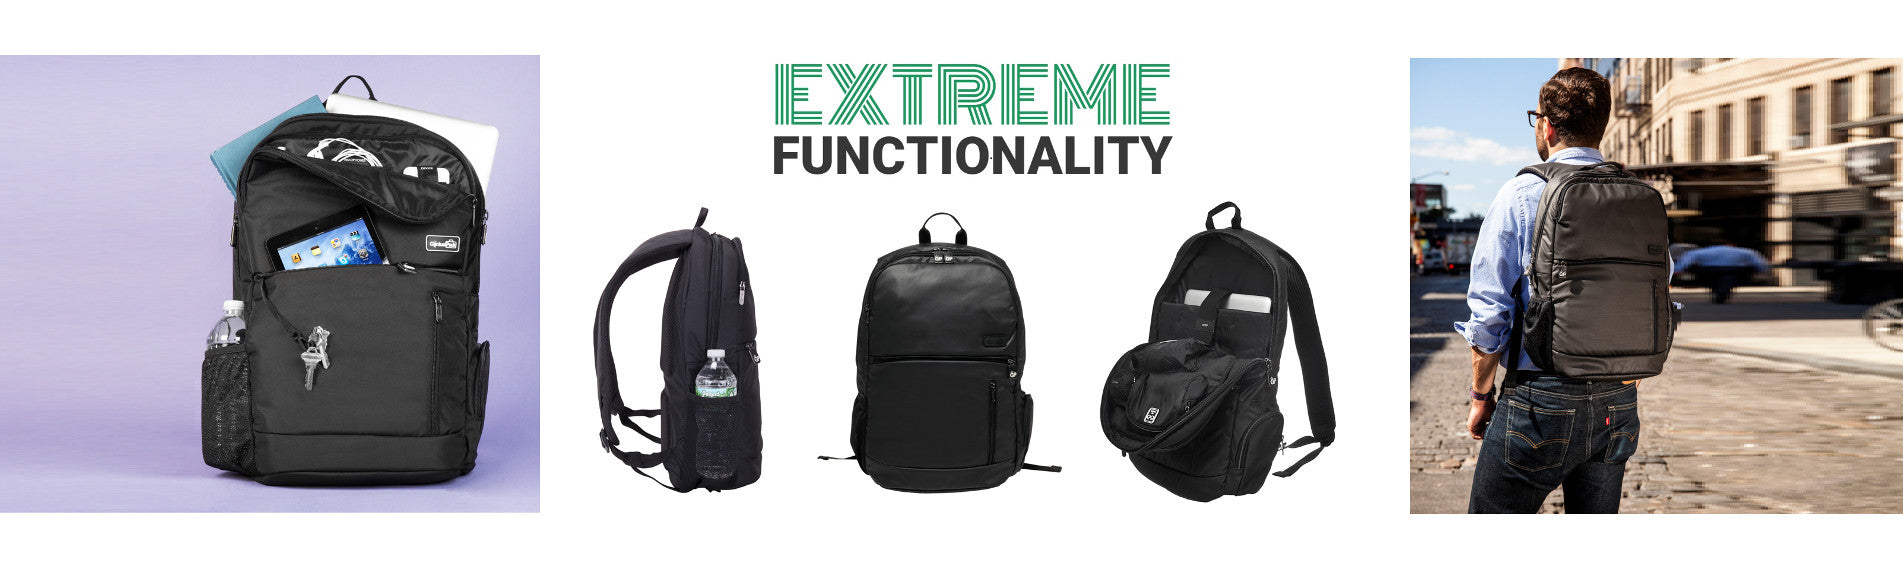 a2a2eb11118f Genius Pack | Extremely Functional Luggage, Innovative Travel Products